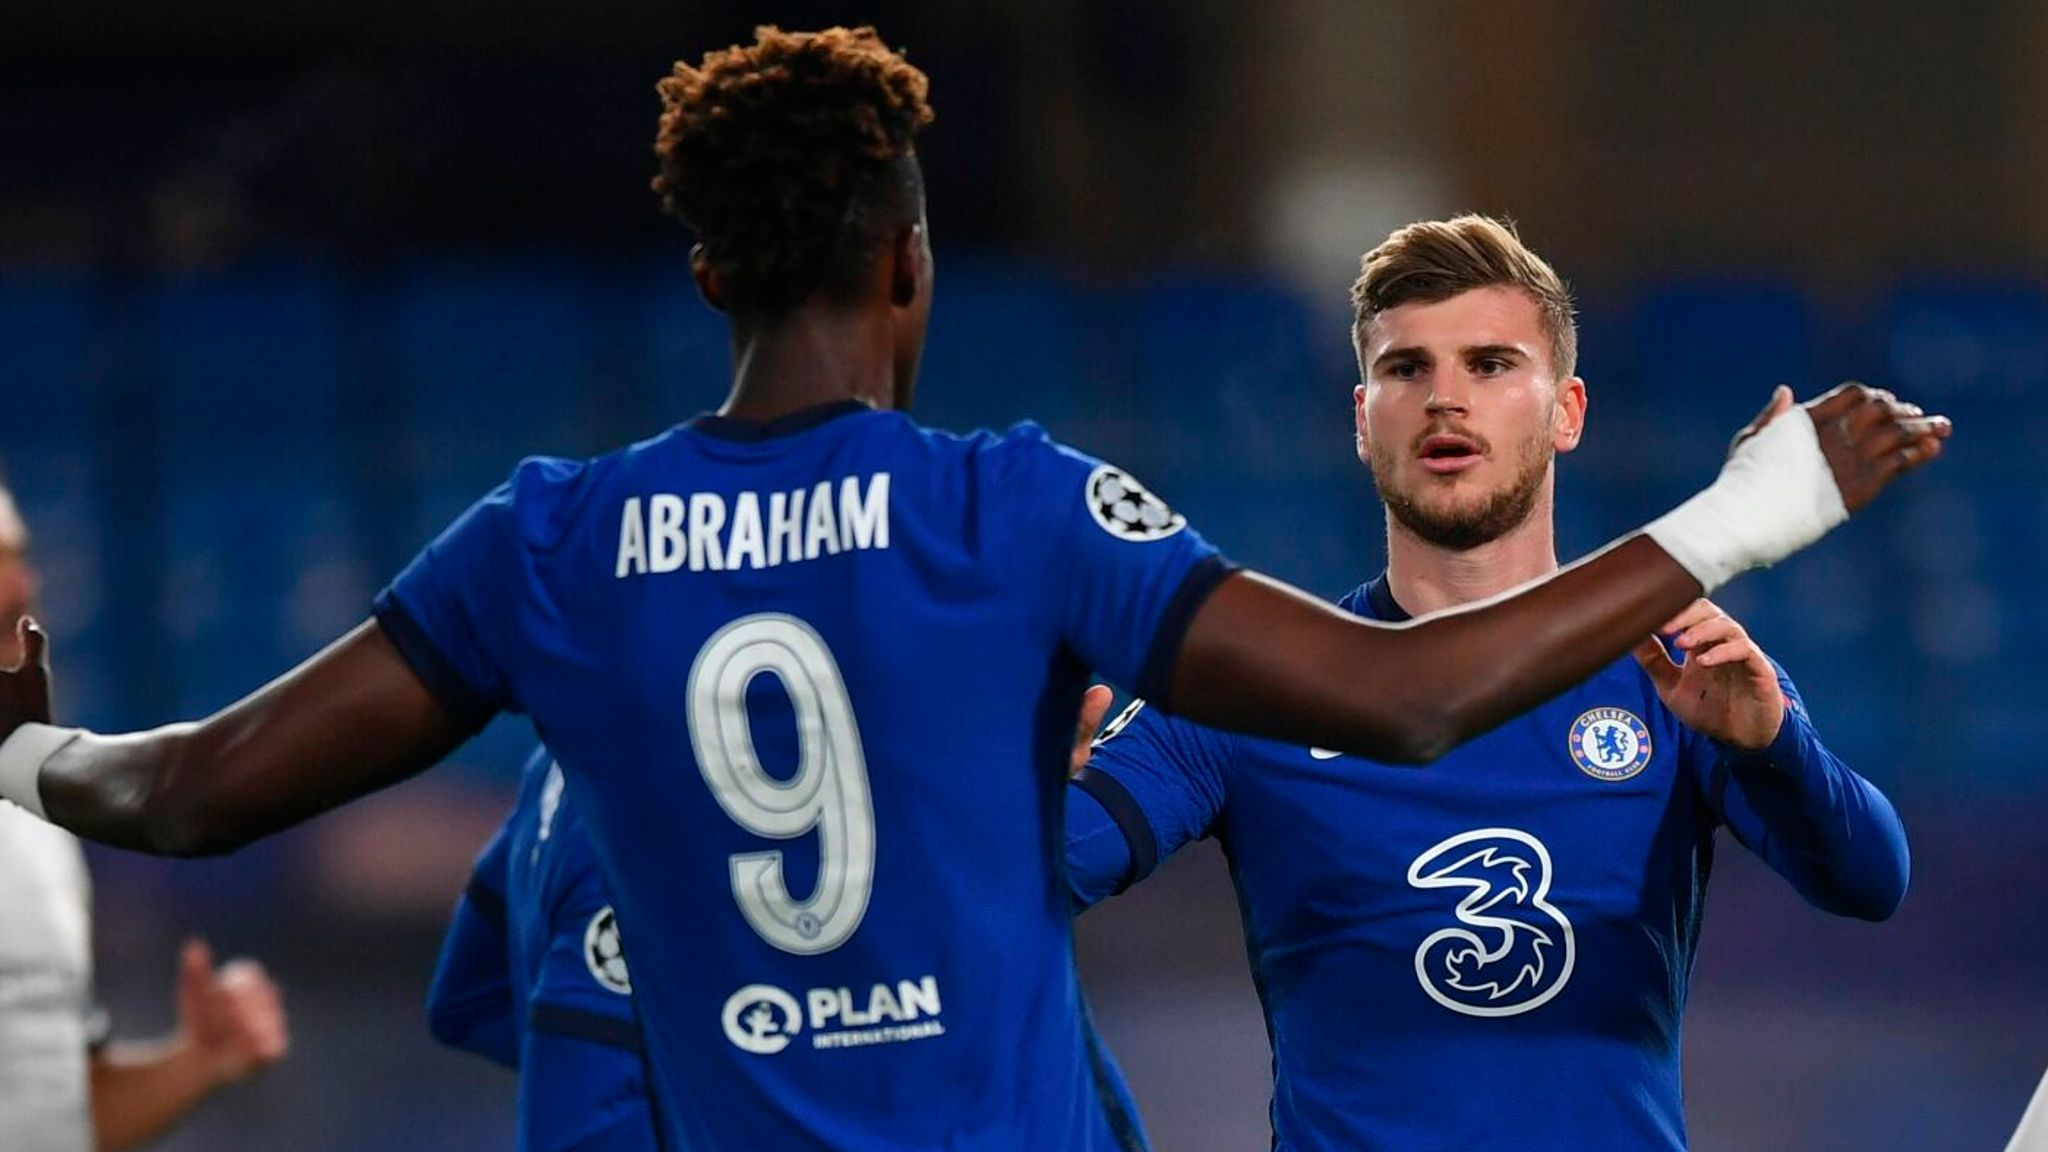 Chelsea 3-0 Rennes: Timo Werner and Tammy Abraham on target in convincing  Champions League win | Football News | Sky Sports